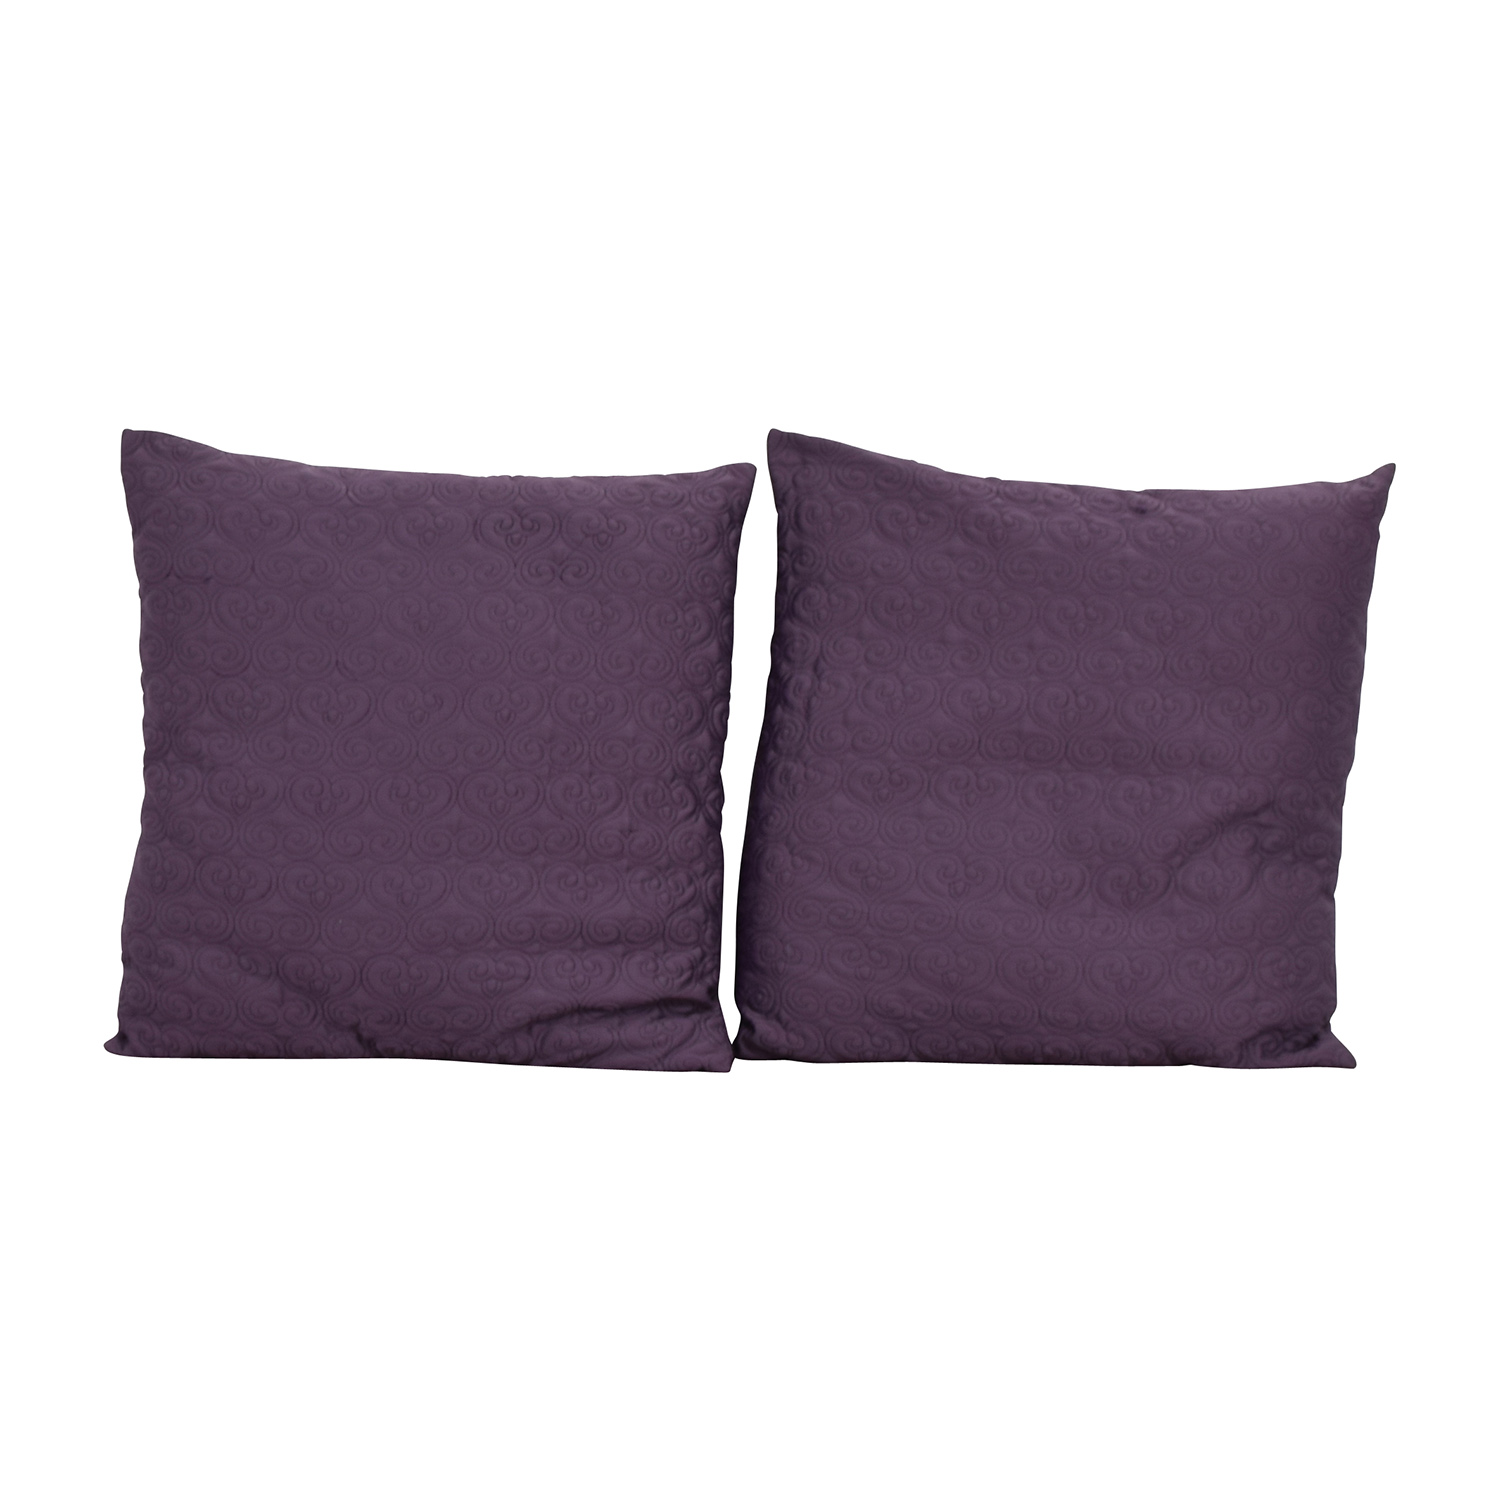 Purple Quilted Toss Pillows / Decor